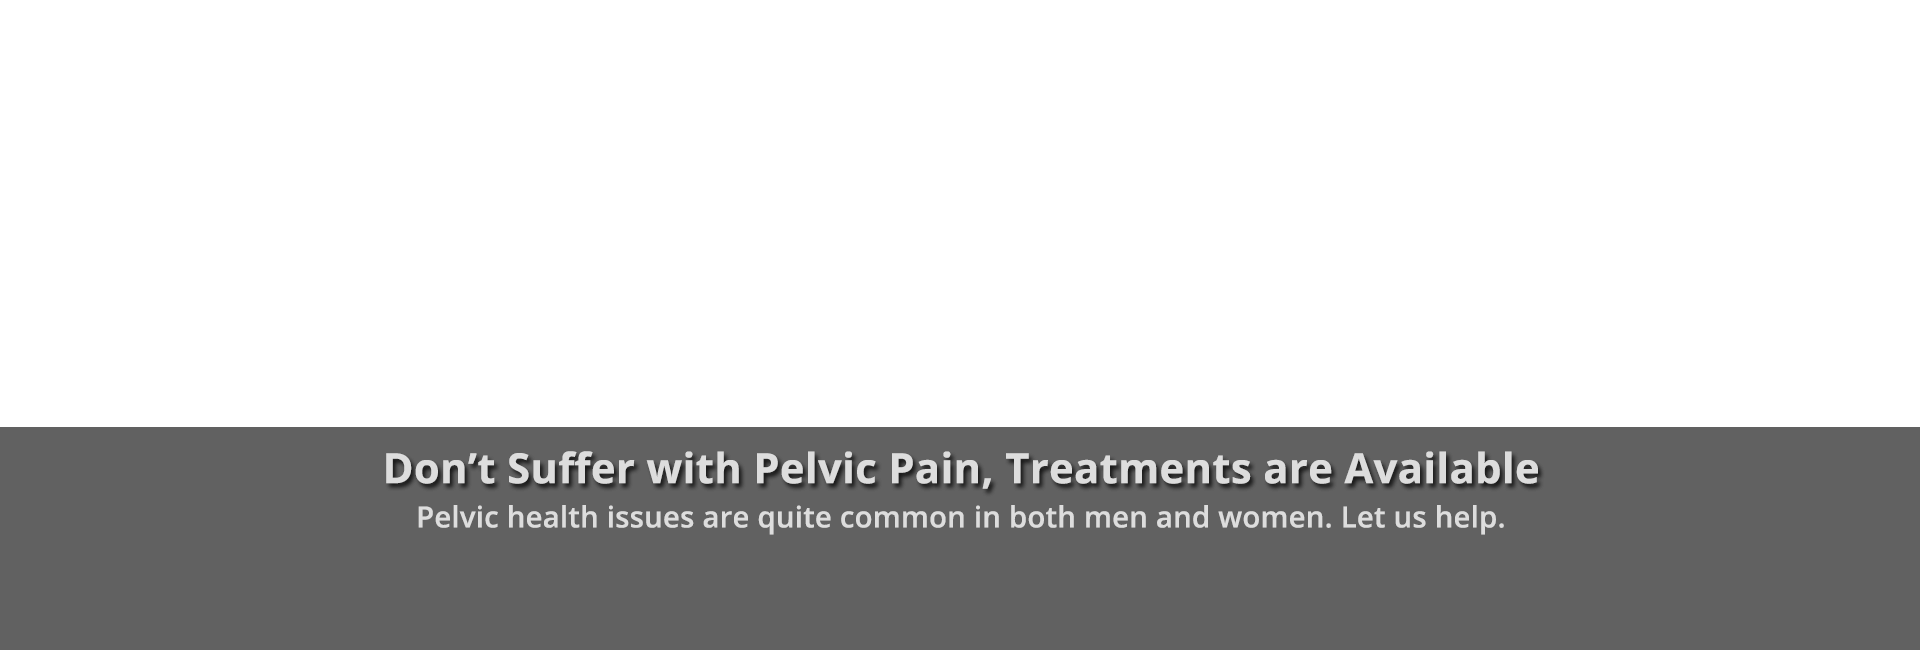 Elevation Physiotherapy & Wellness :: Physiotherapy for Pelvic Health Issues